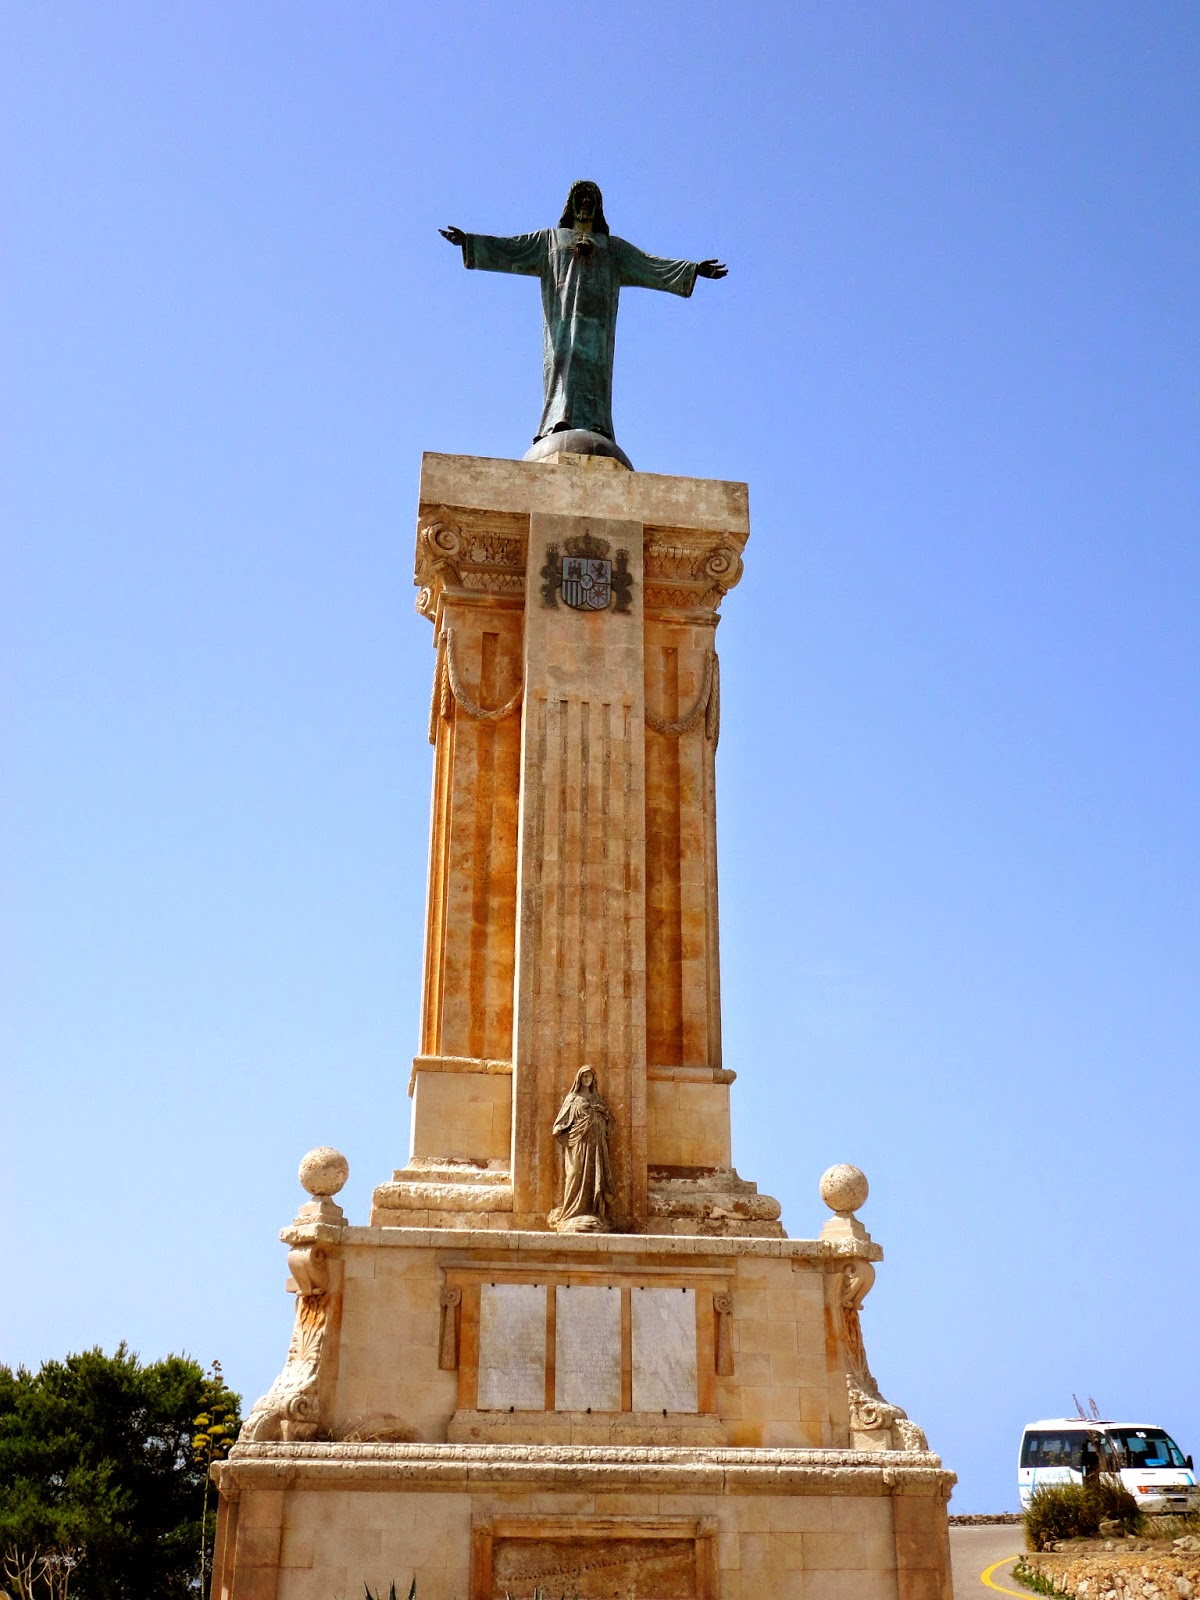 Travel Inspiration | Menorca, Spain | Christ statue monument on hilltop